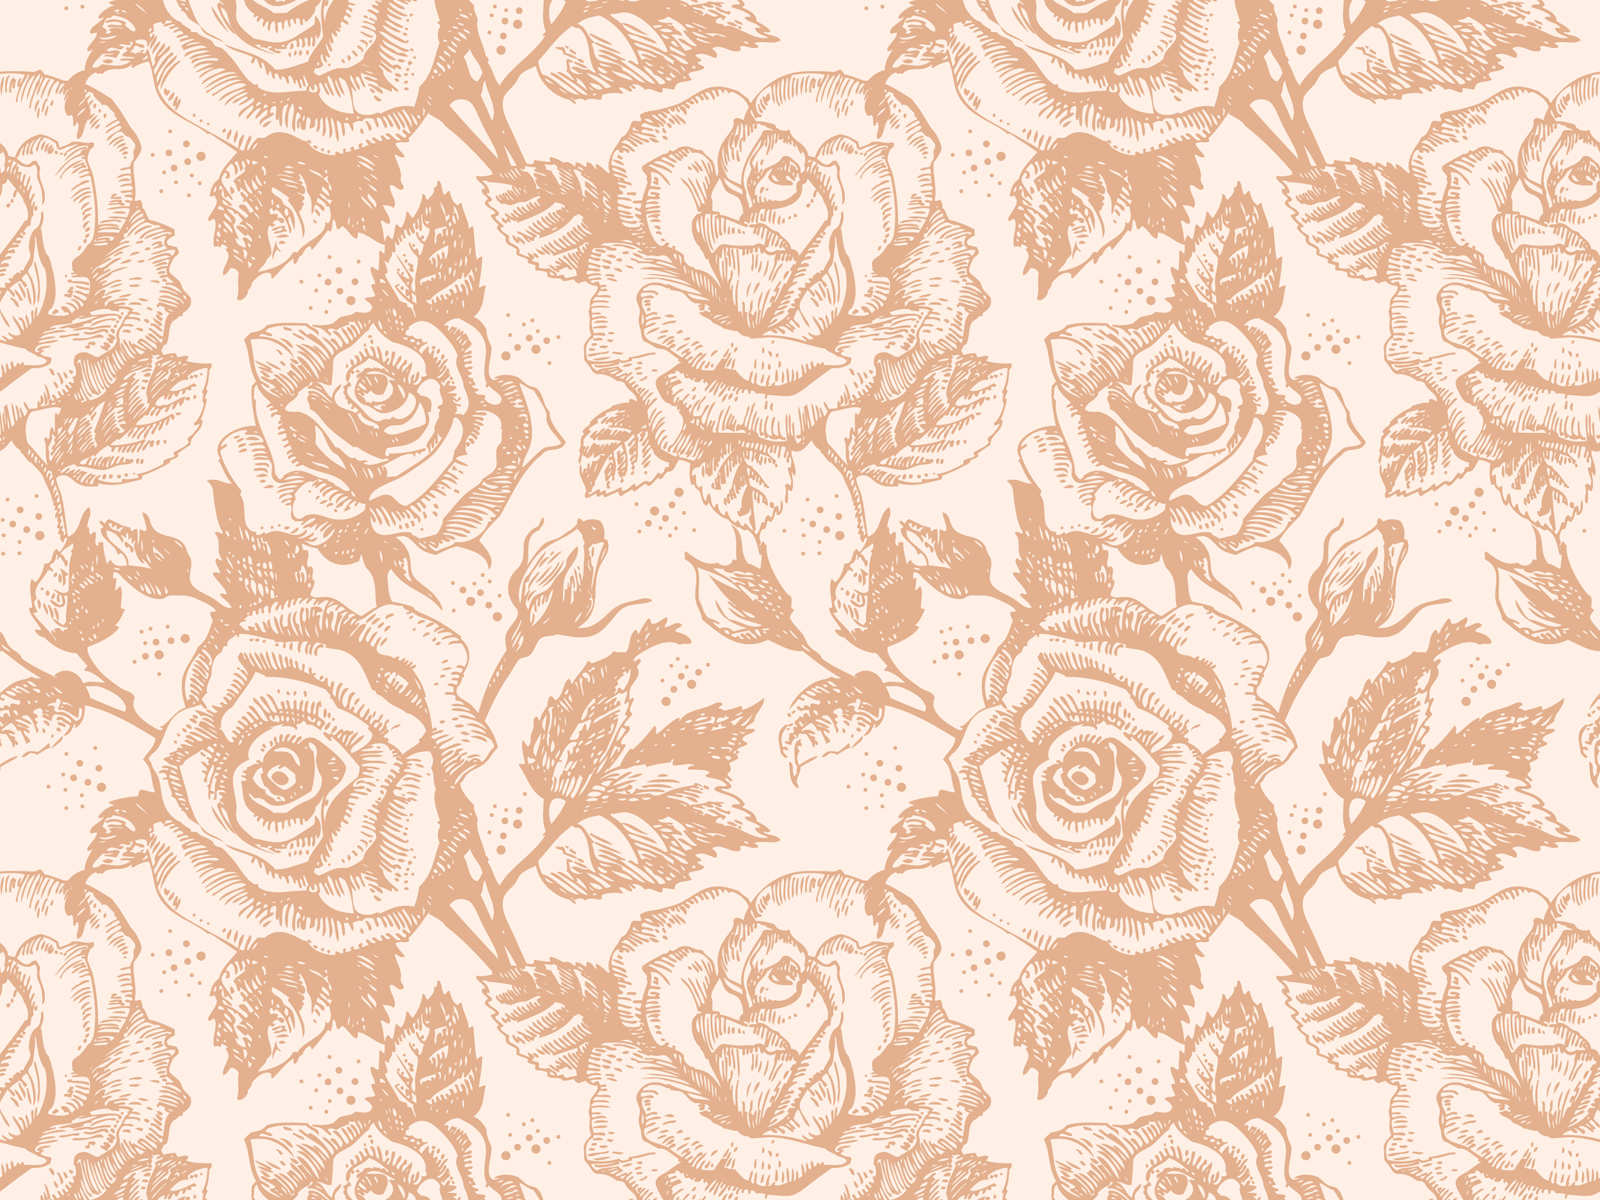 Retro Rose Flowers Backgrounds Colors Flowers Pattern